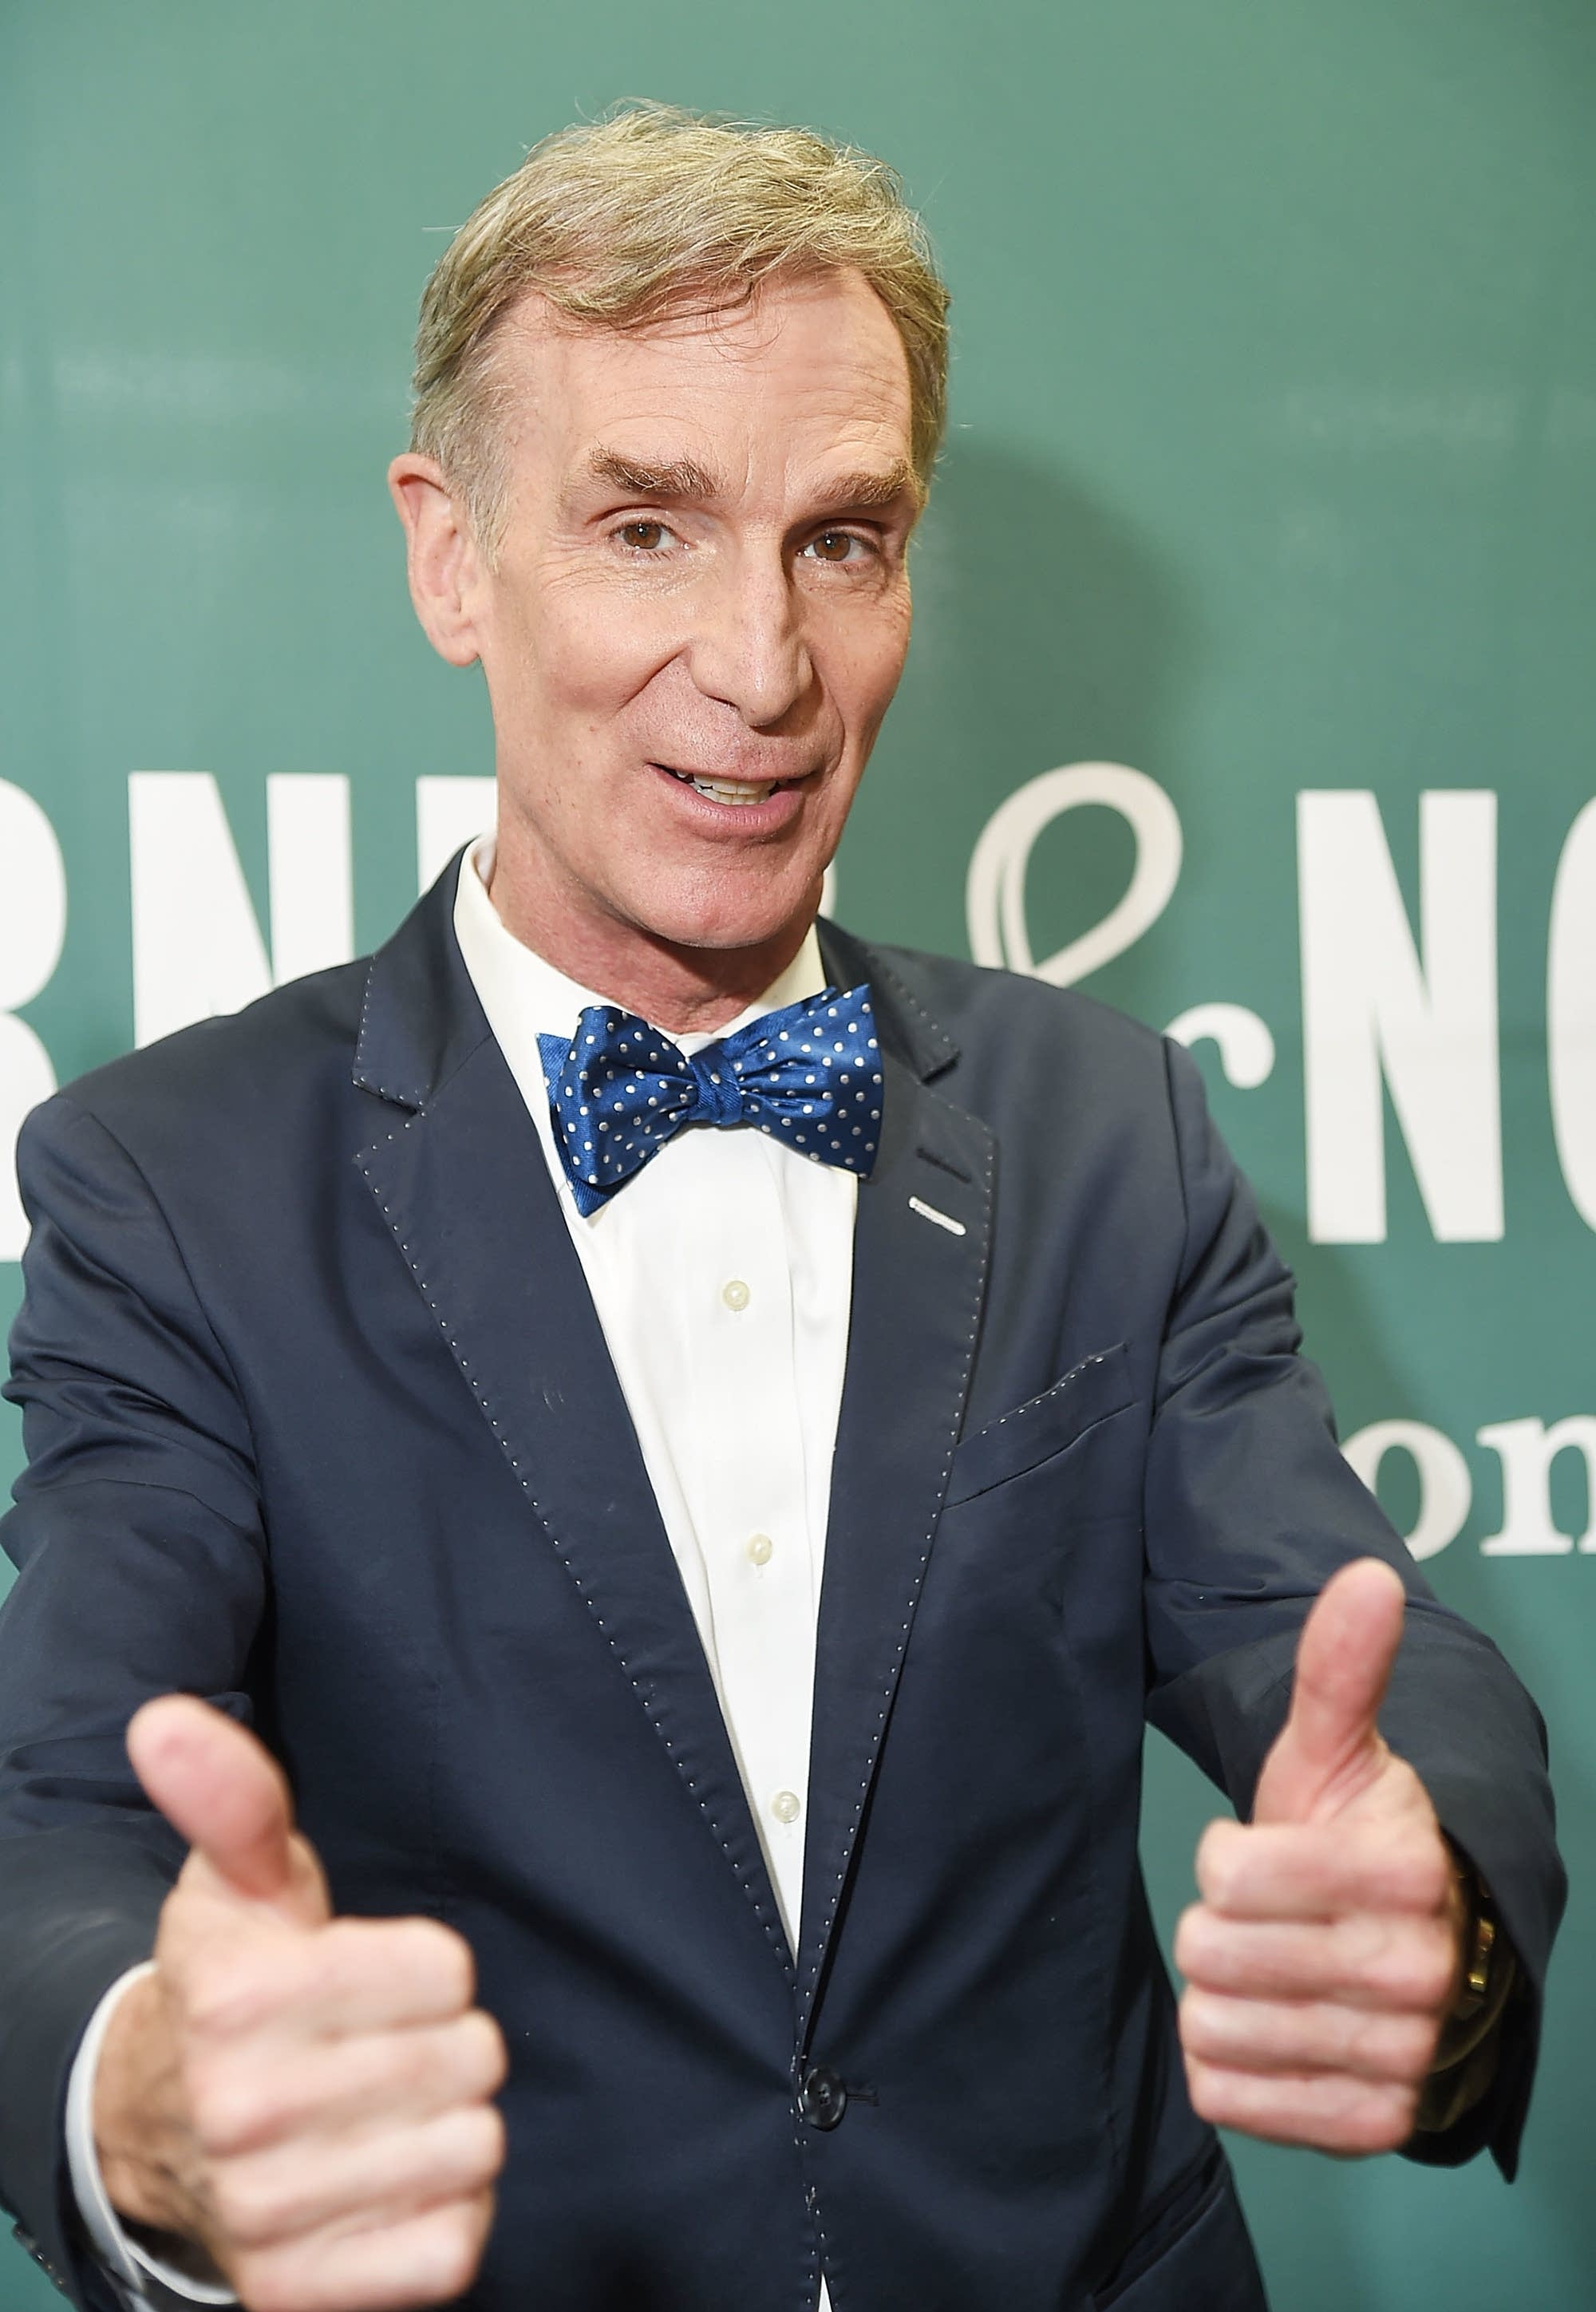 Bill Nye The Science Guy On A Mission To Save The Planet